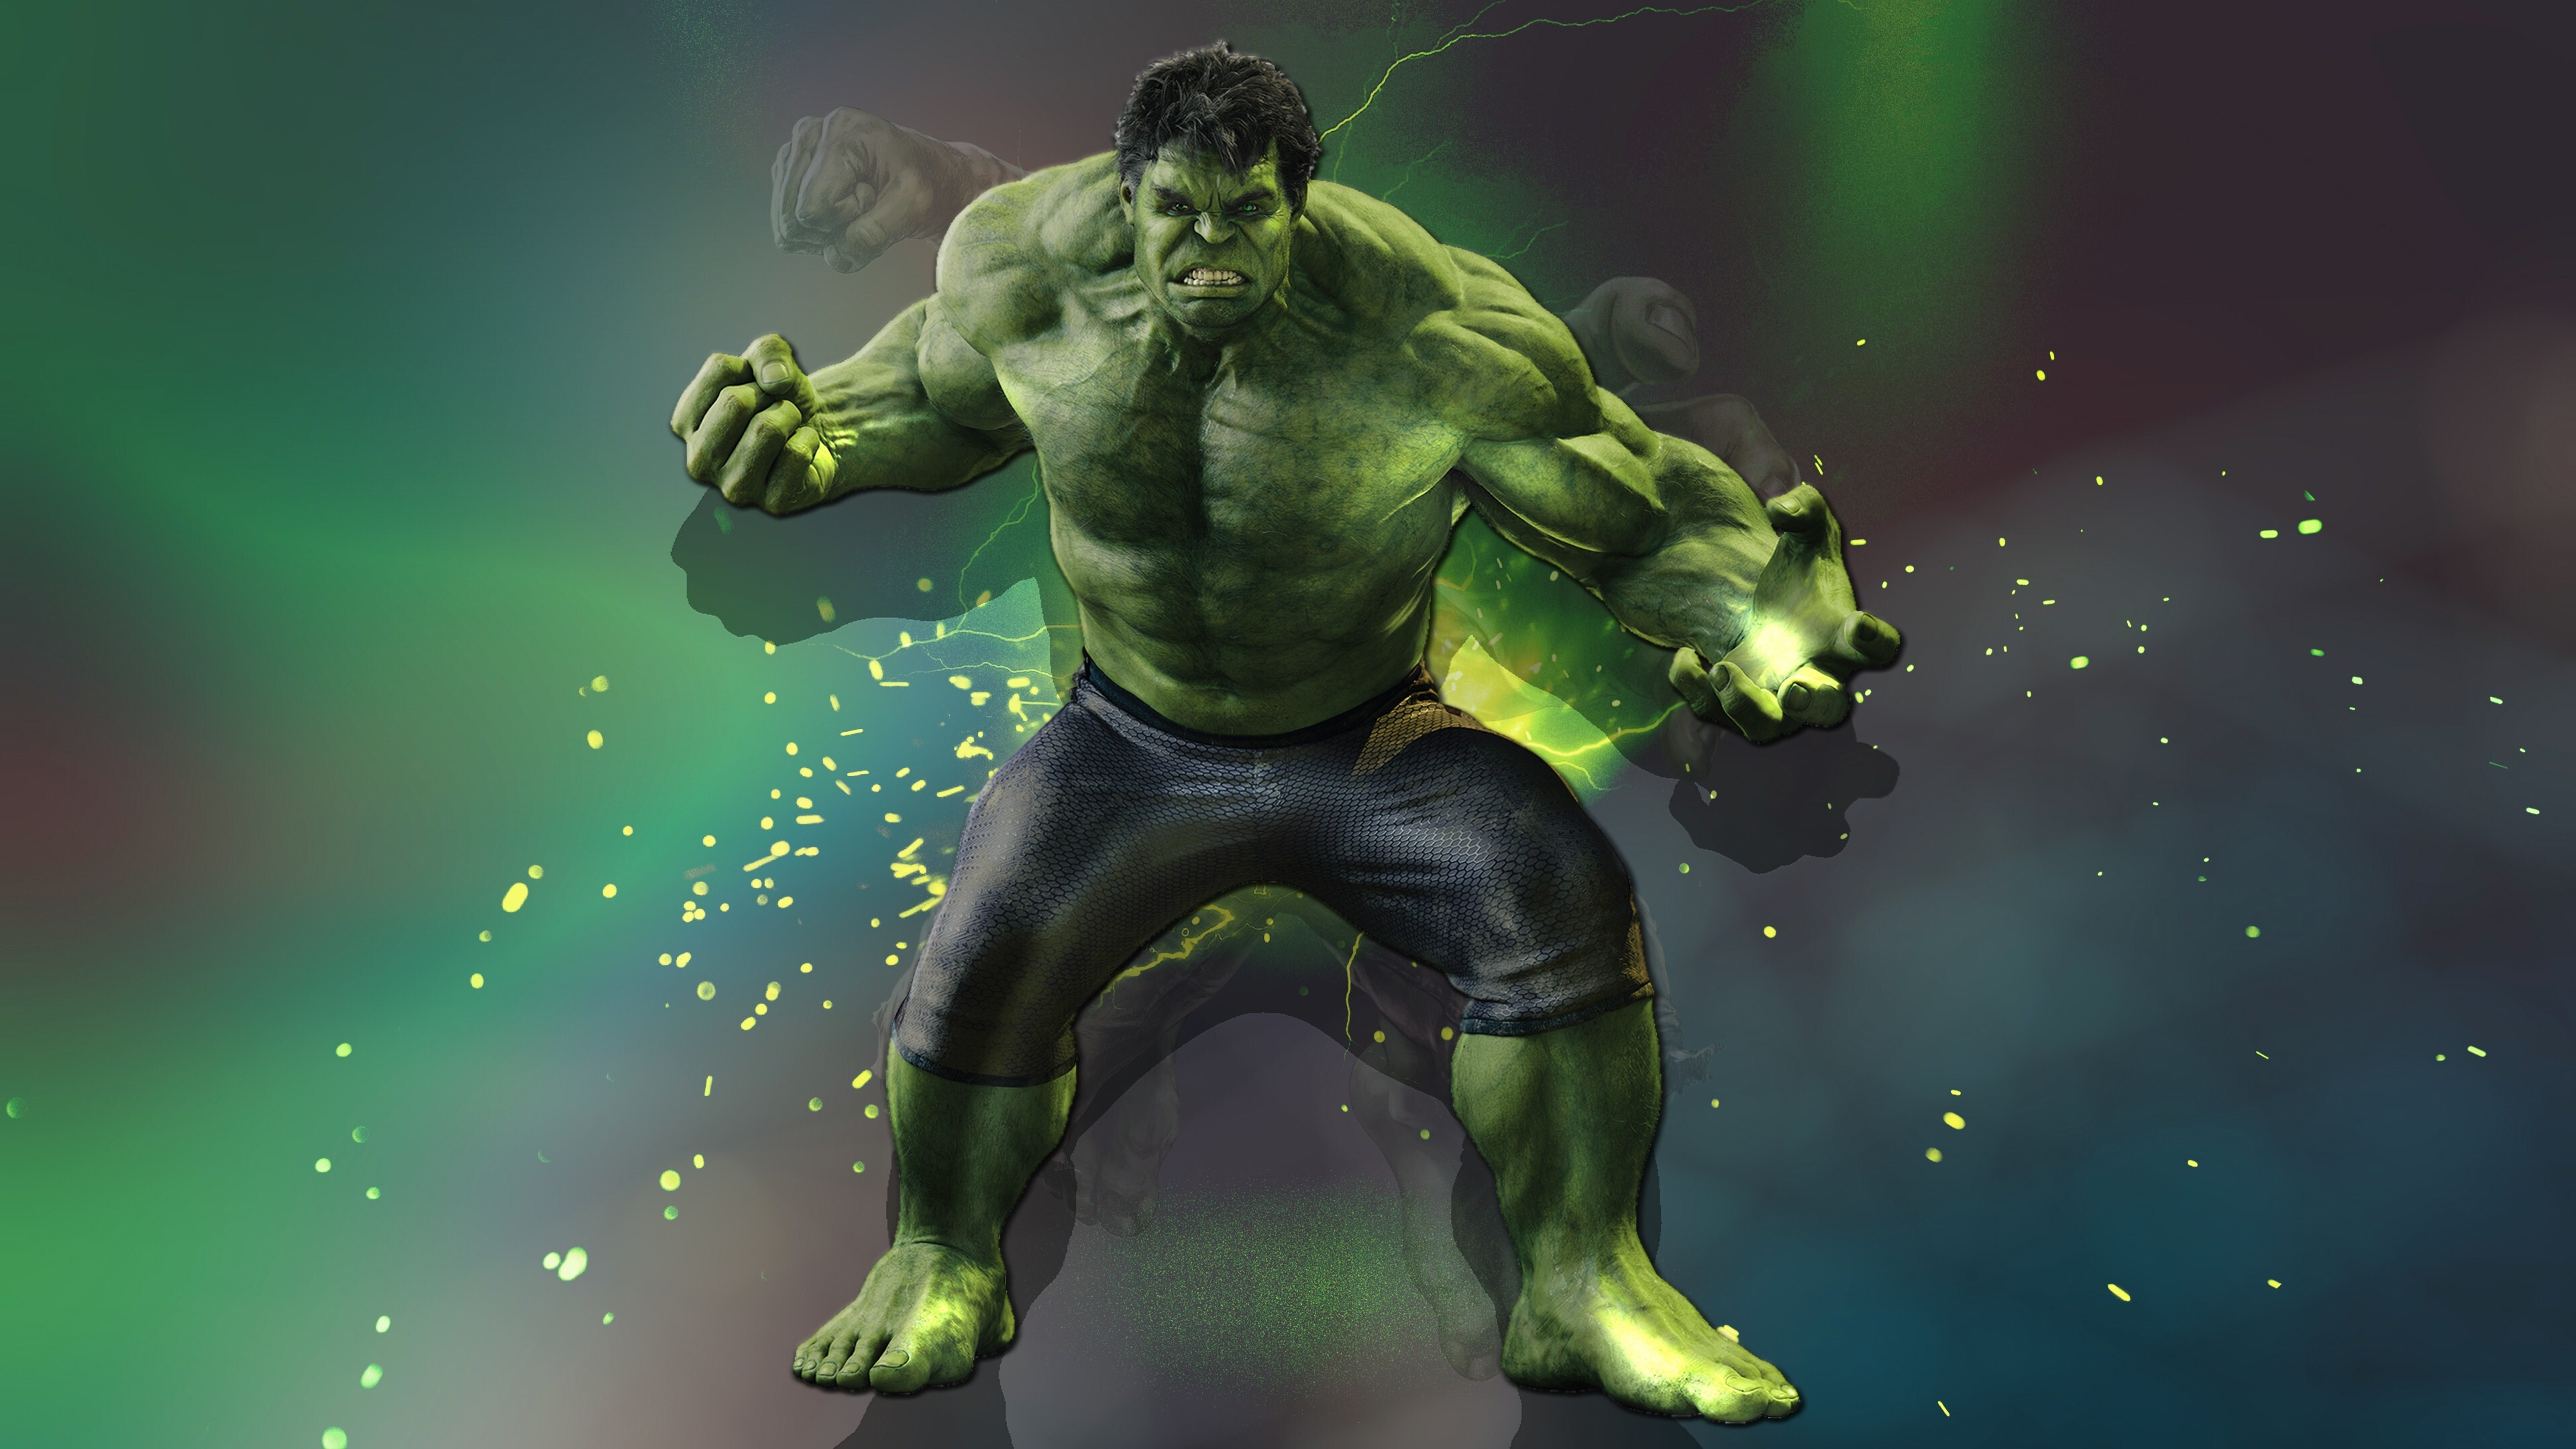 Hulk 4k wallpaper hd wallpapers - Hulk hd images free download ...